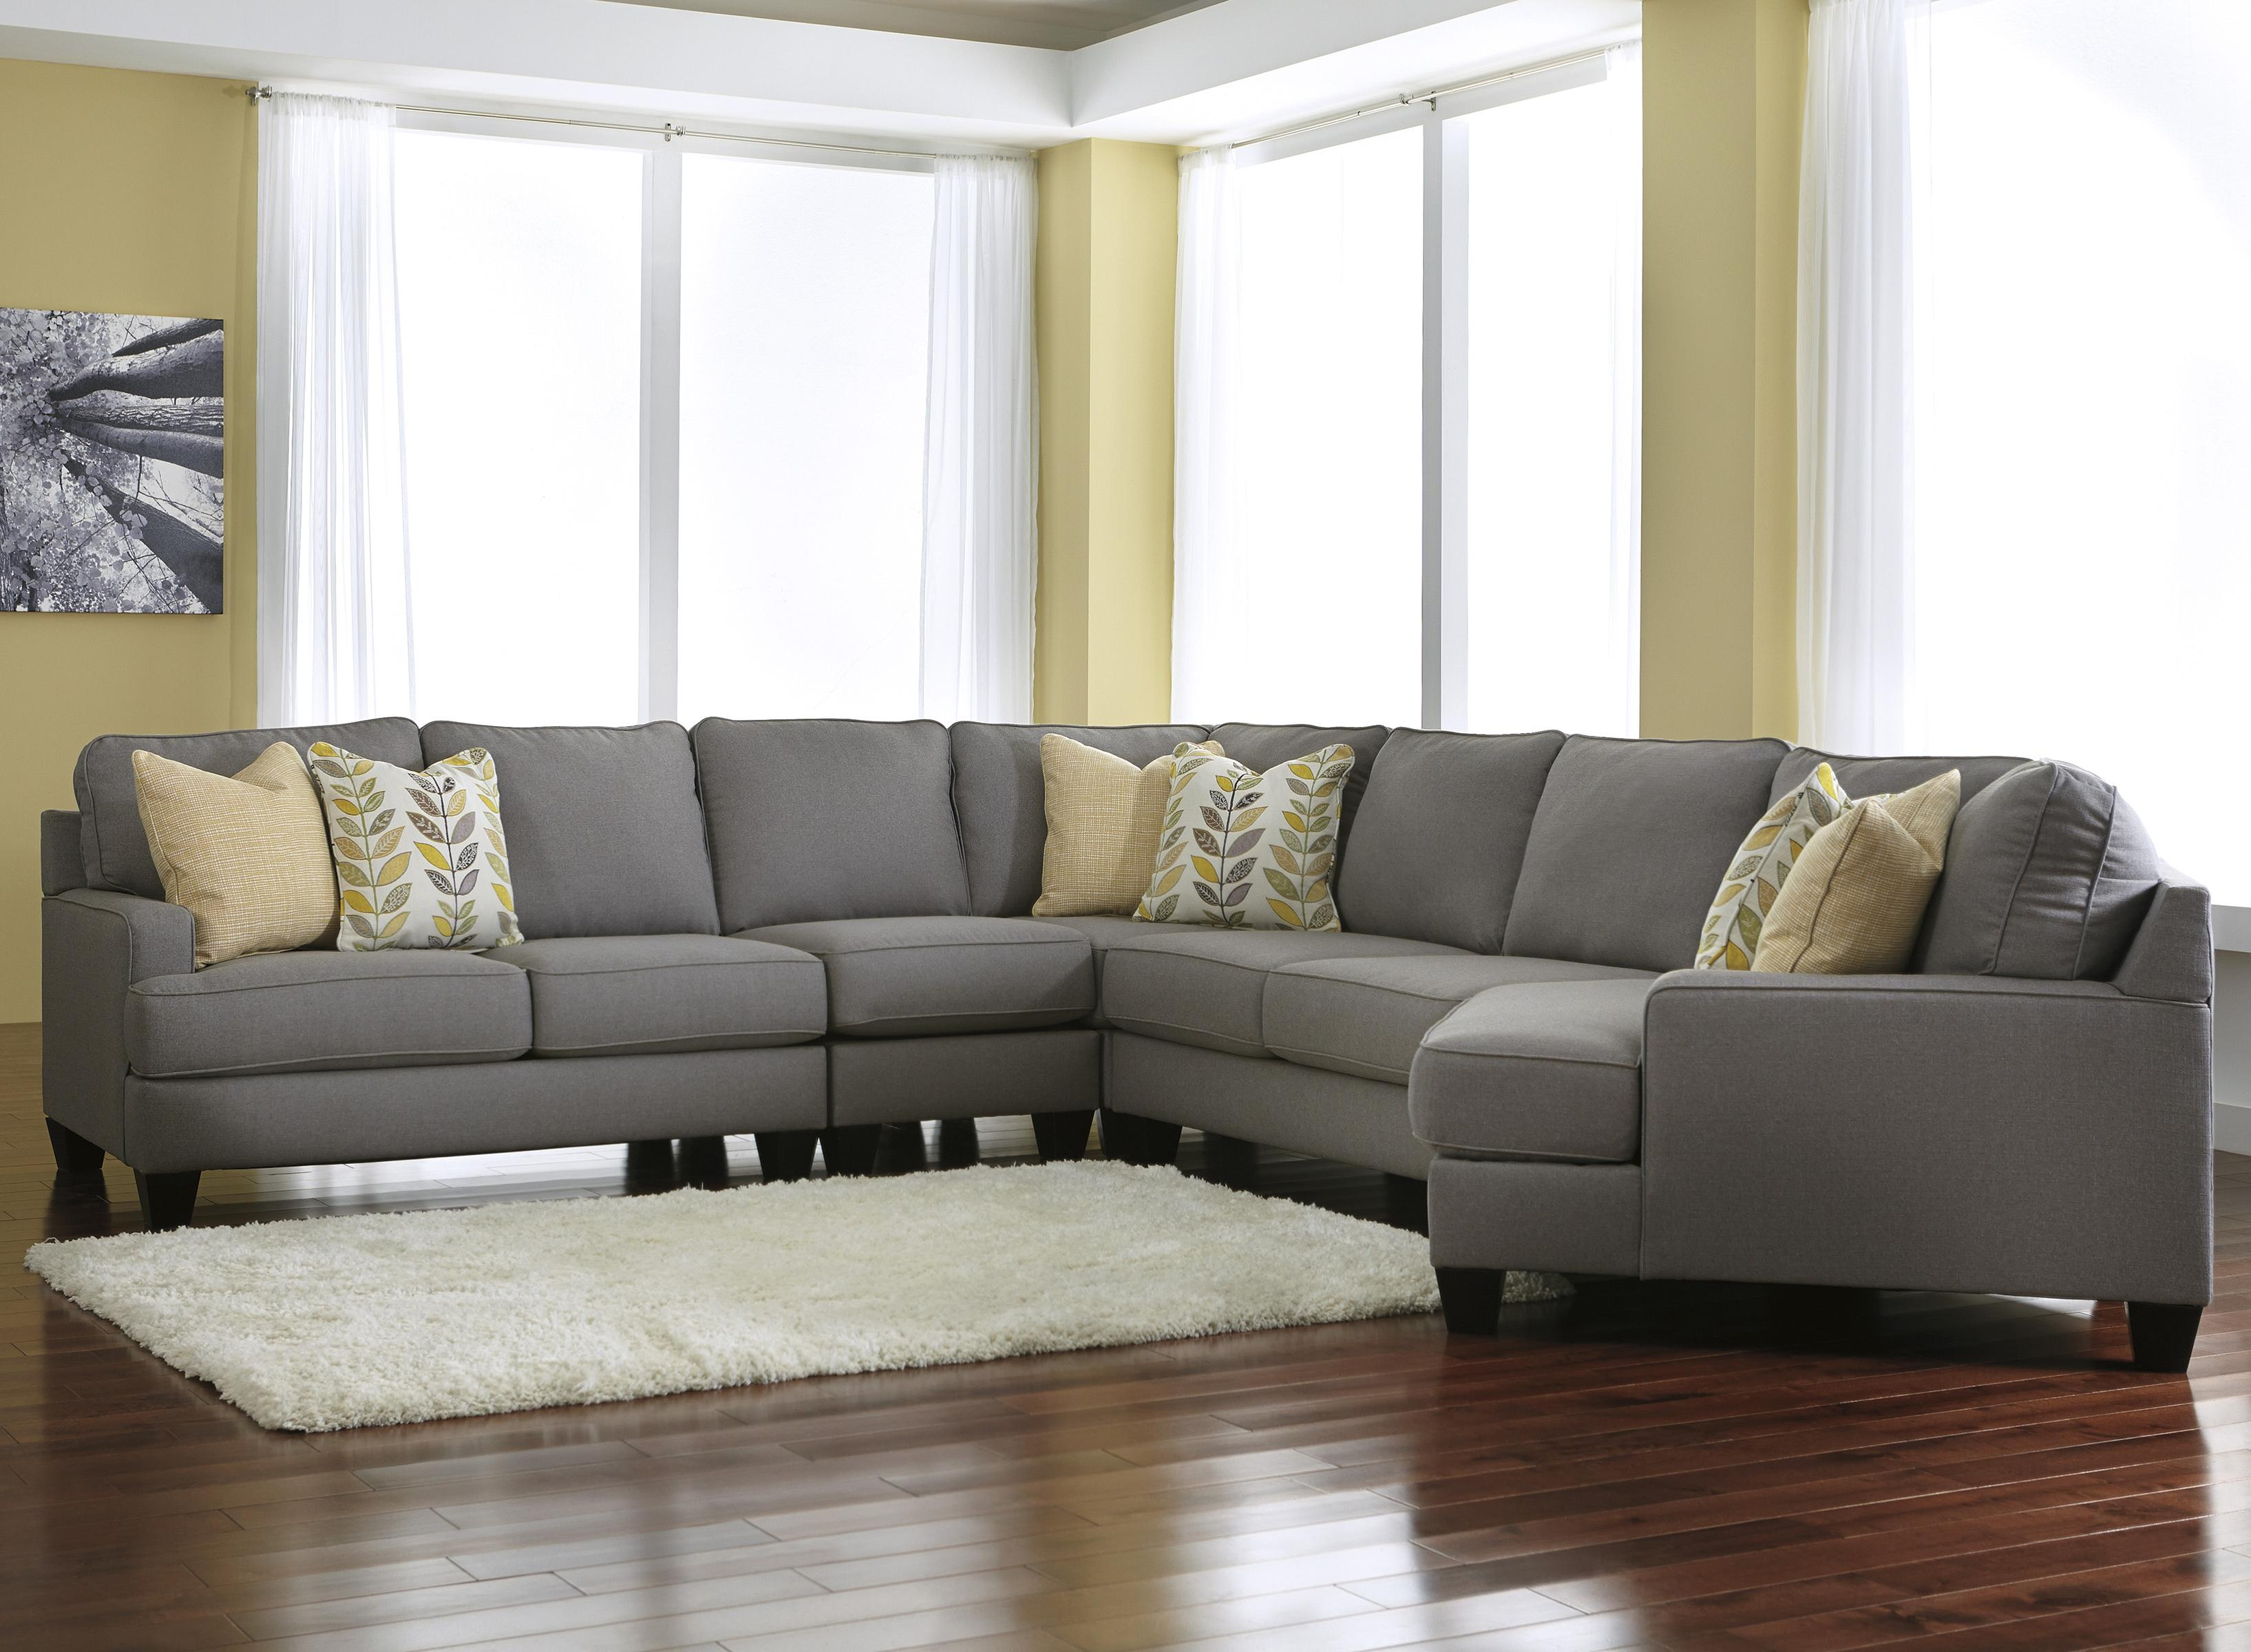 Modern 5 Piece Sectional Sofa with Right Cuddler & Reversible Seat